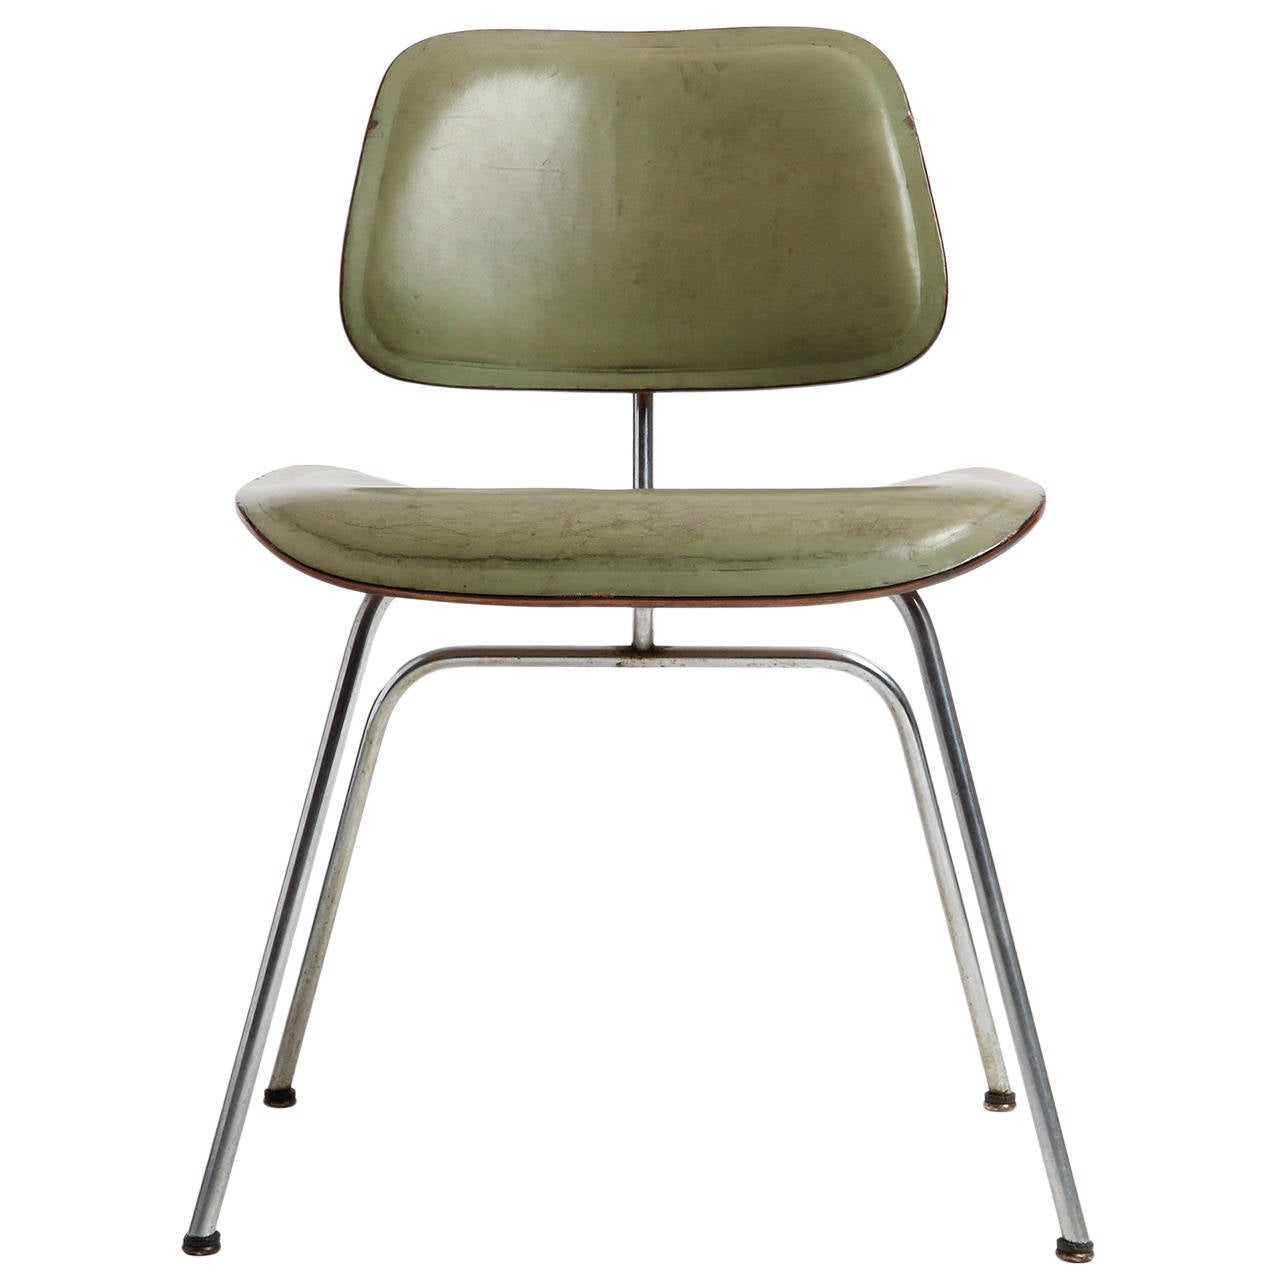 eames leather chair dining toddler saucer dcm by charles and ray for sale at 1stdibs